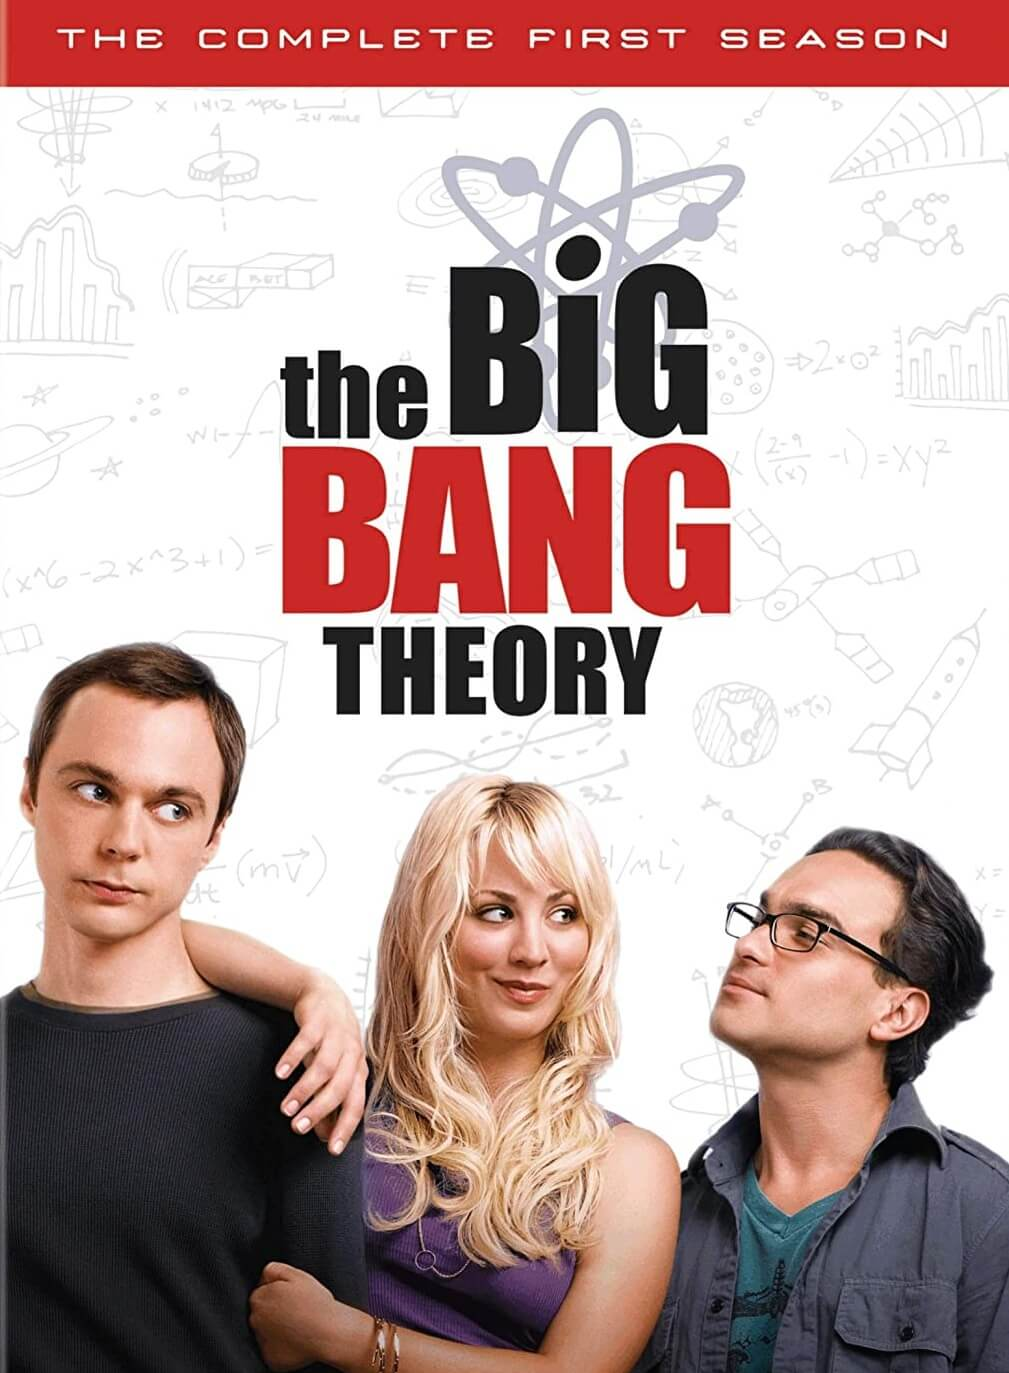 The Big Bang Theory S01 E13